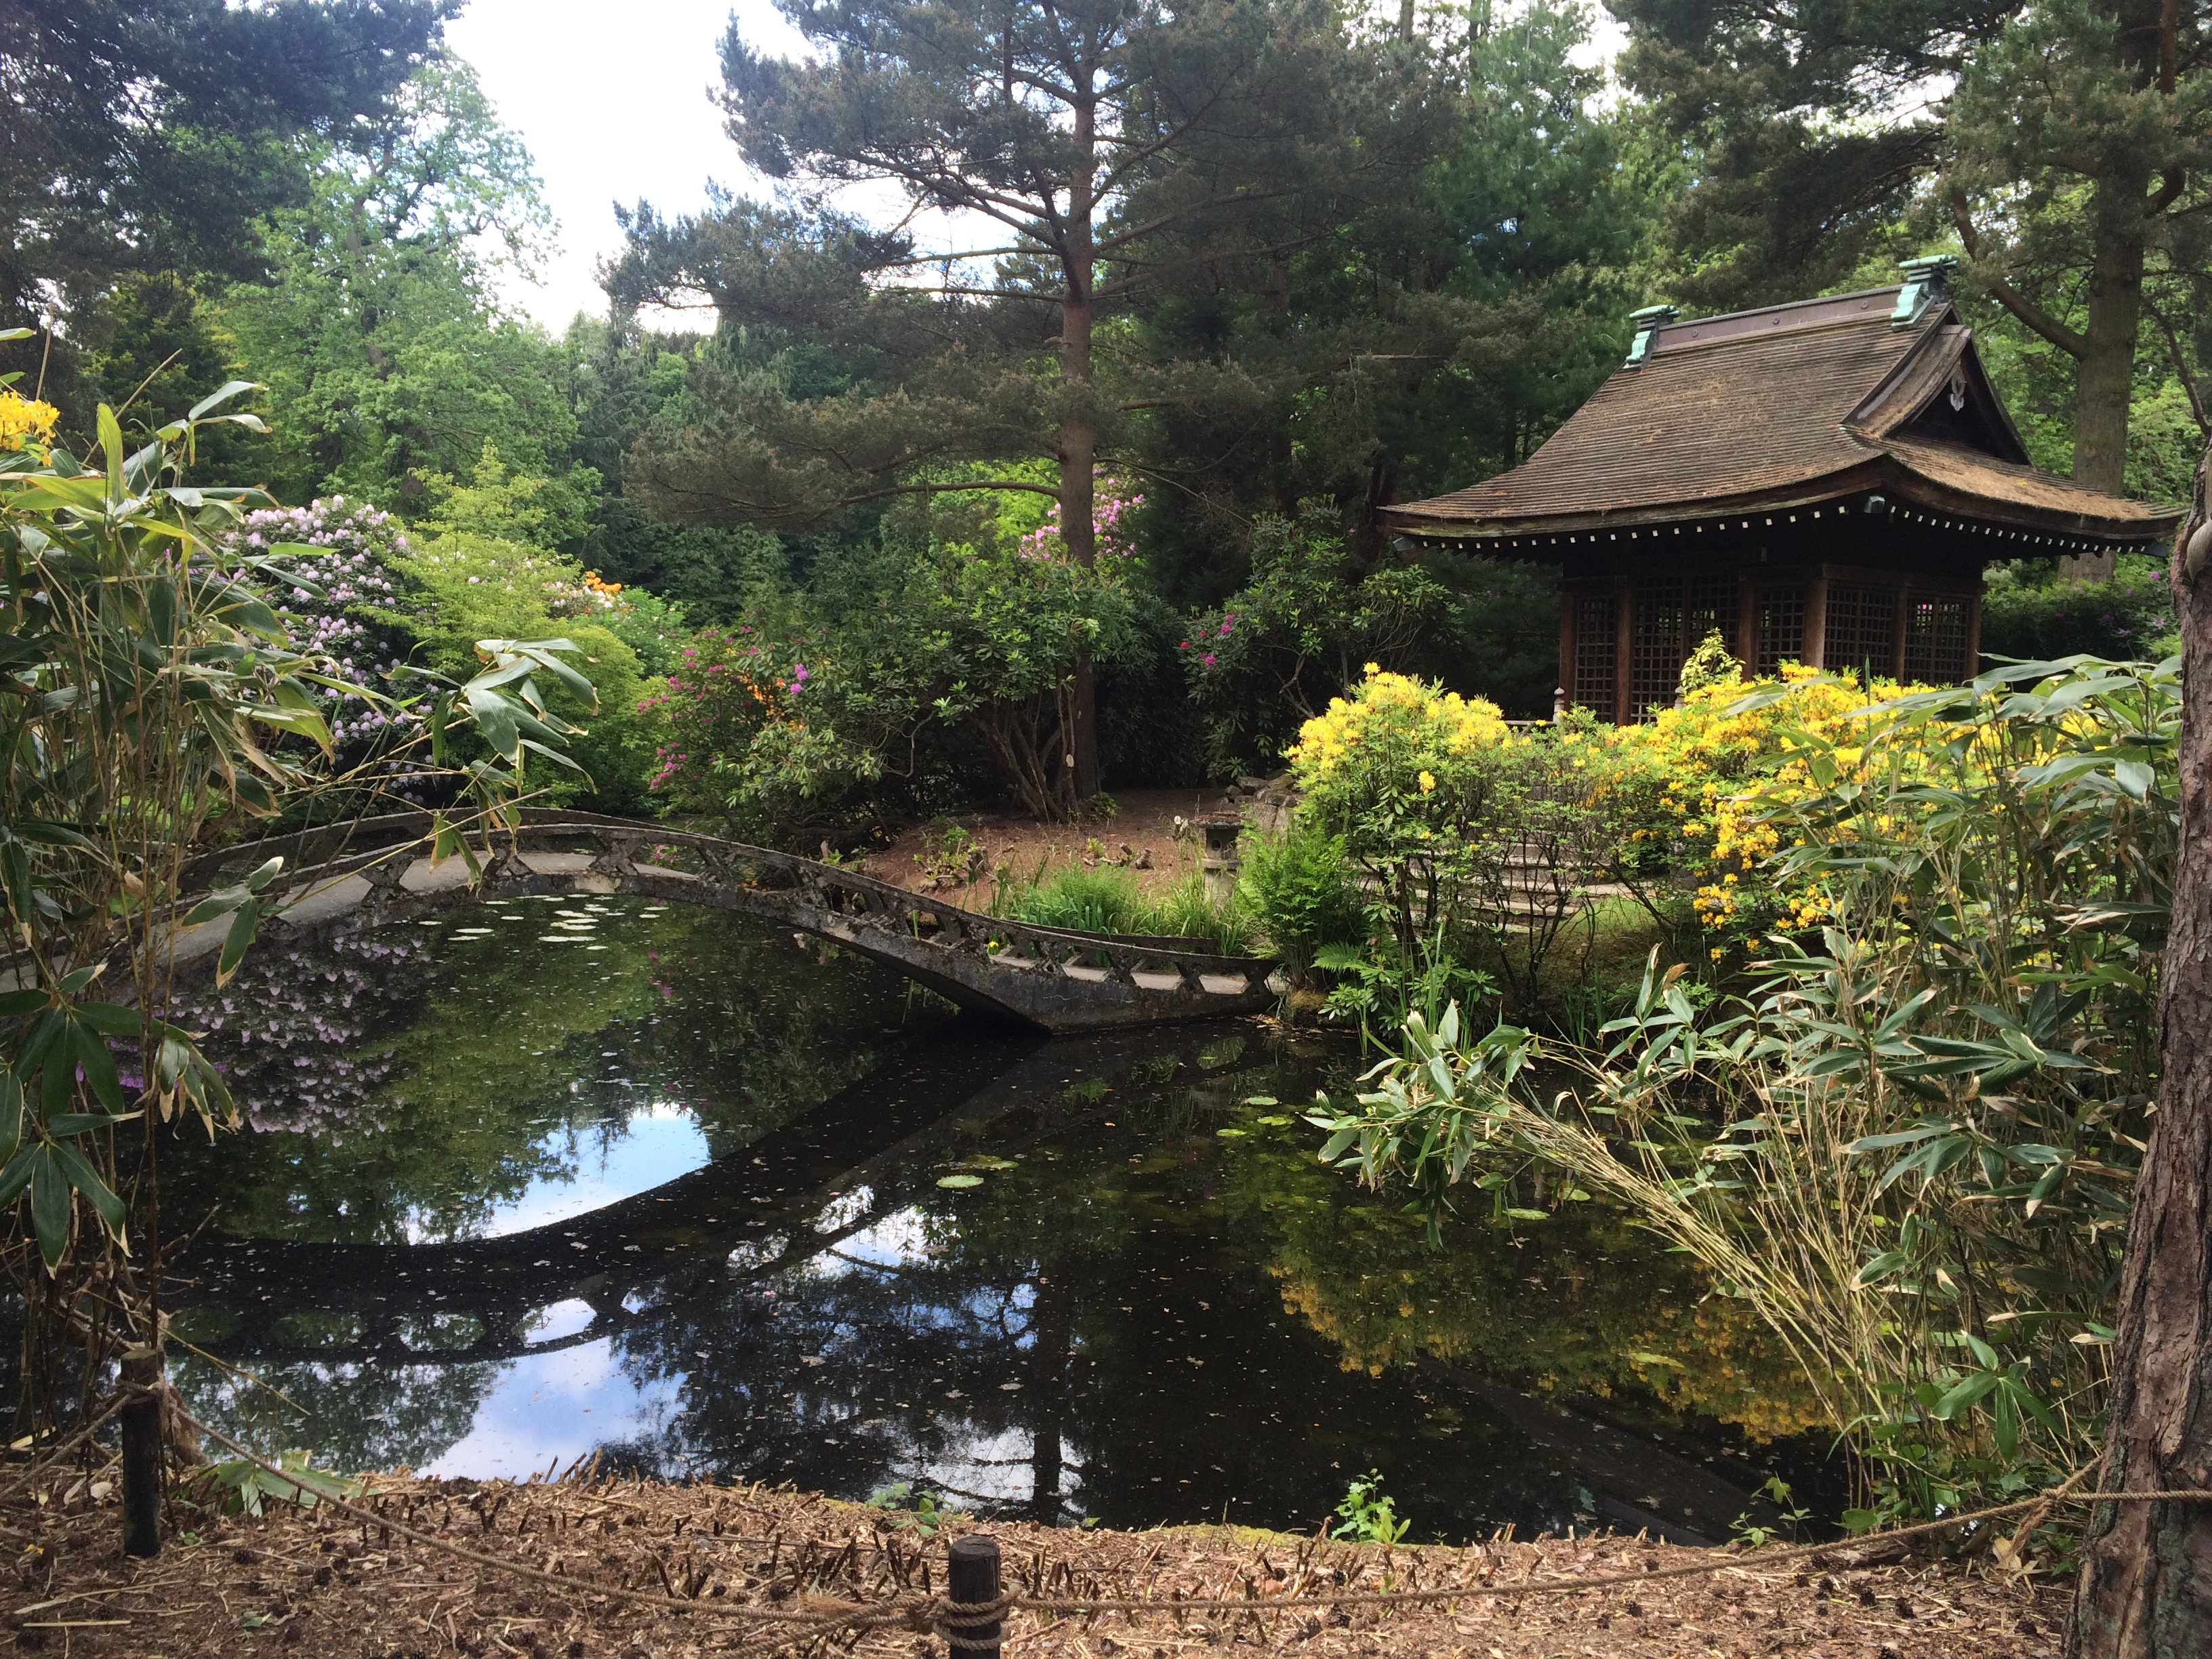 The Japanese garden - Tatton Park